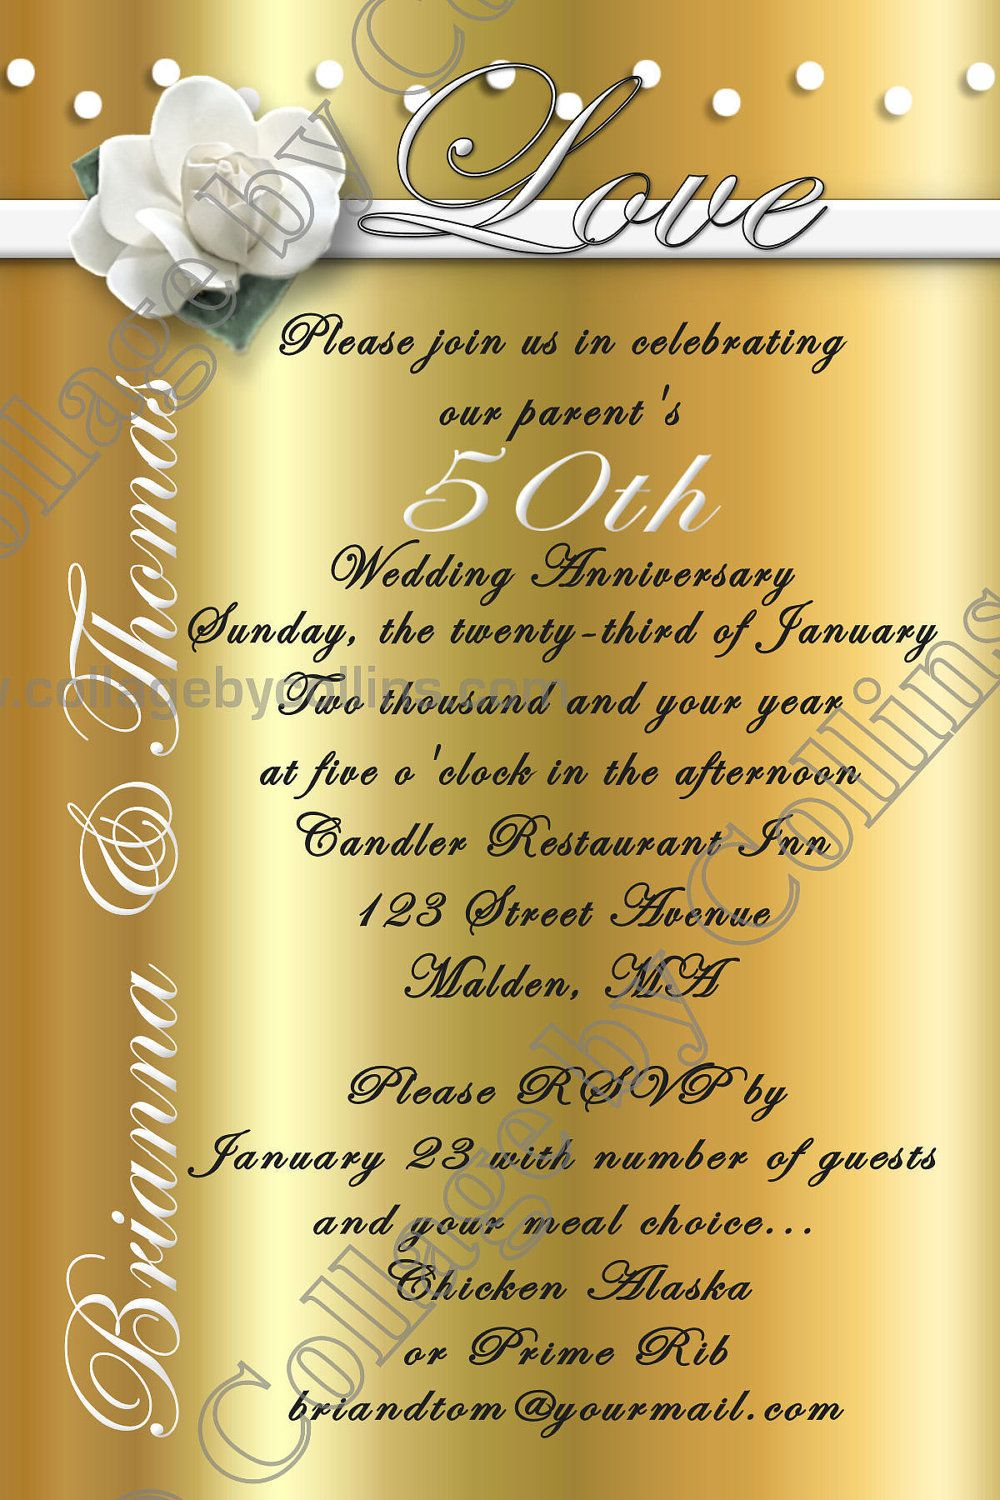 Wedding Anniversary Quotes Parents Hindi Image Quotes Golden Wed Golden Anniversary Invitations 50th Wedding Anniversary Invitations Marriage Anniversary Cards